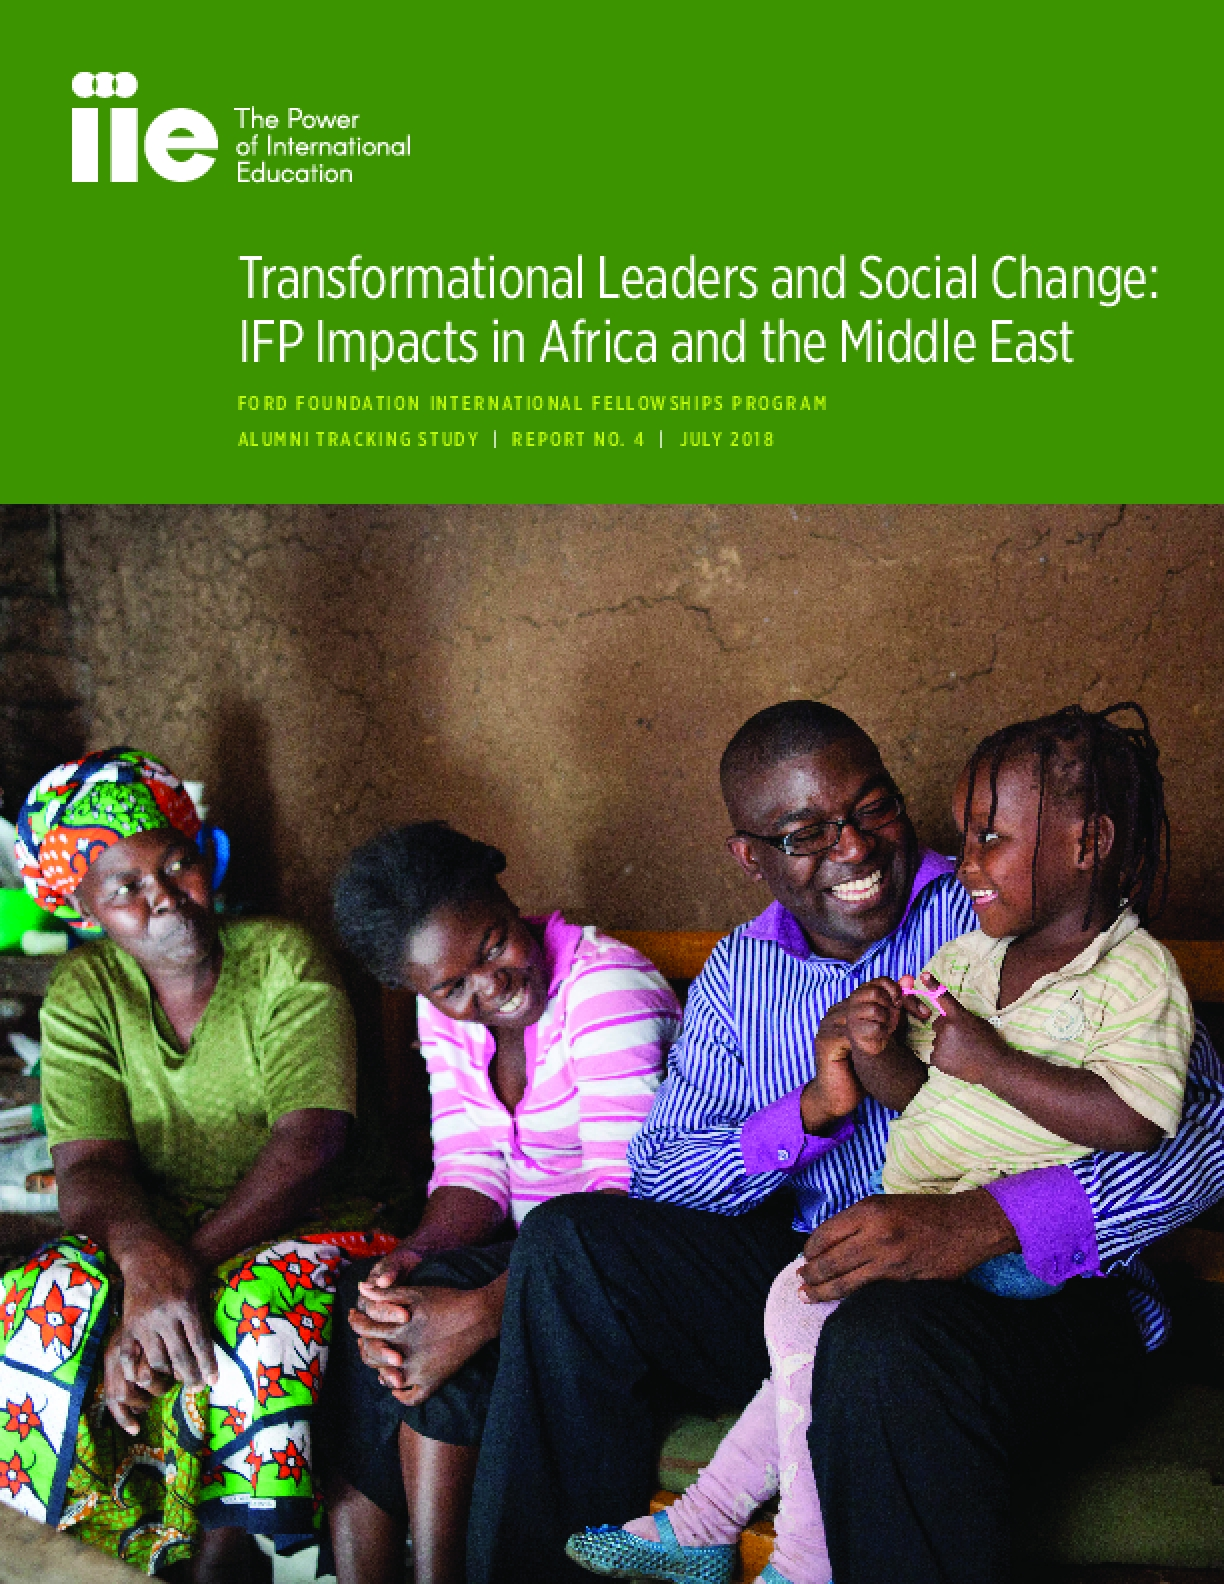 Transformational Leaders and Social Change: IFP Impacts in Africa and the Middle East